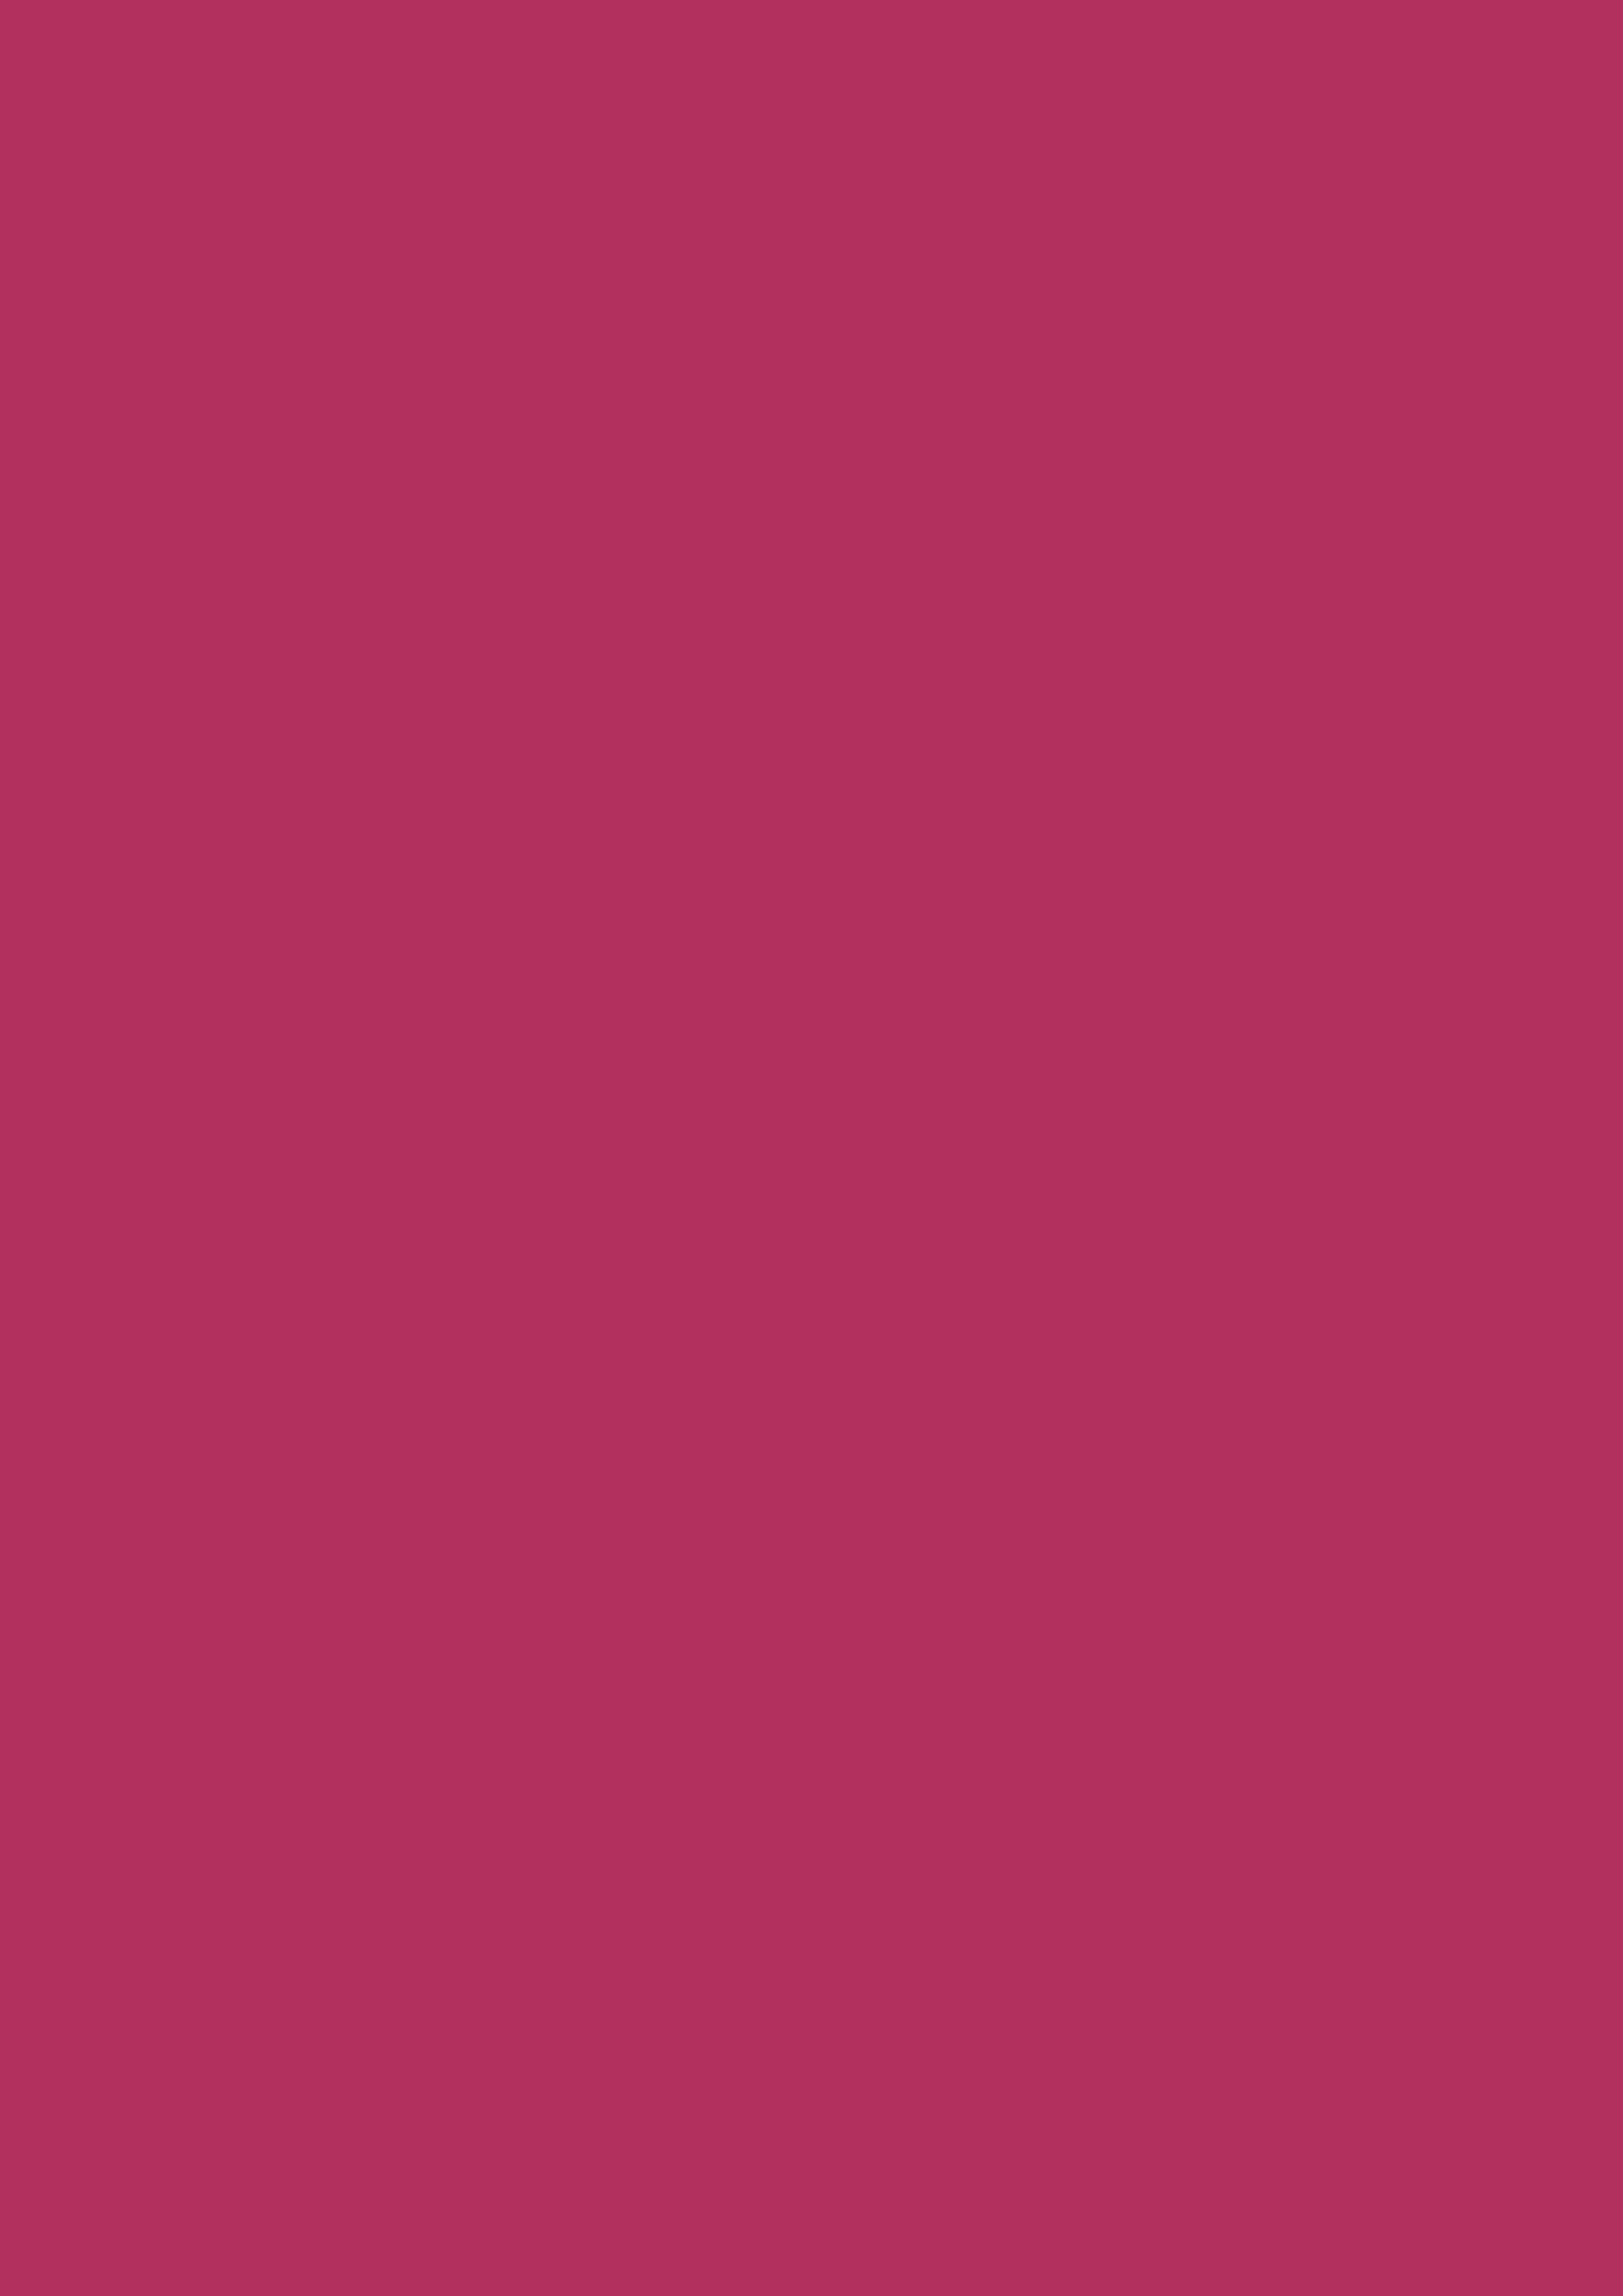 2480x3508 Maroon X11 Gui Solid Color Background